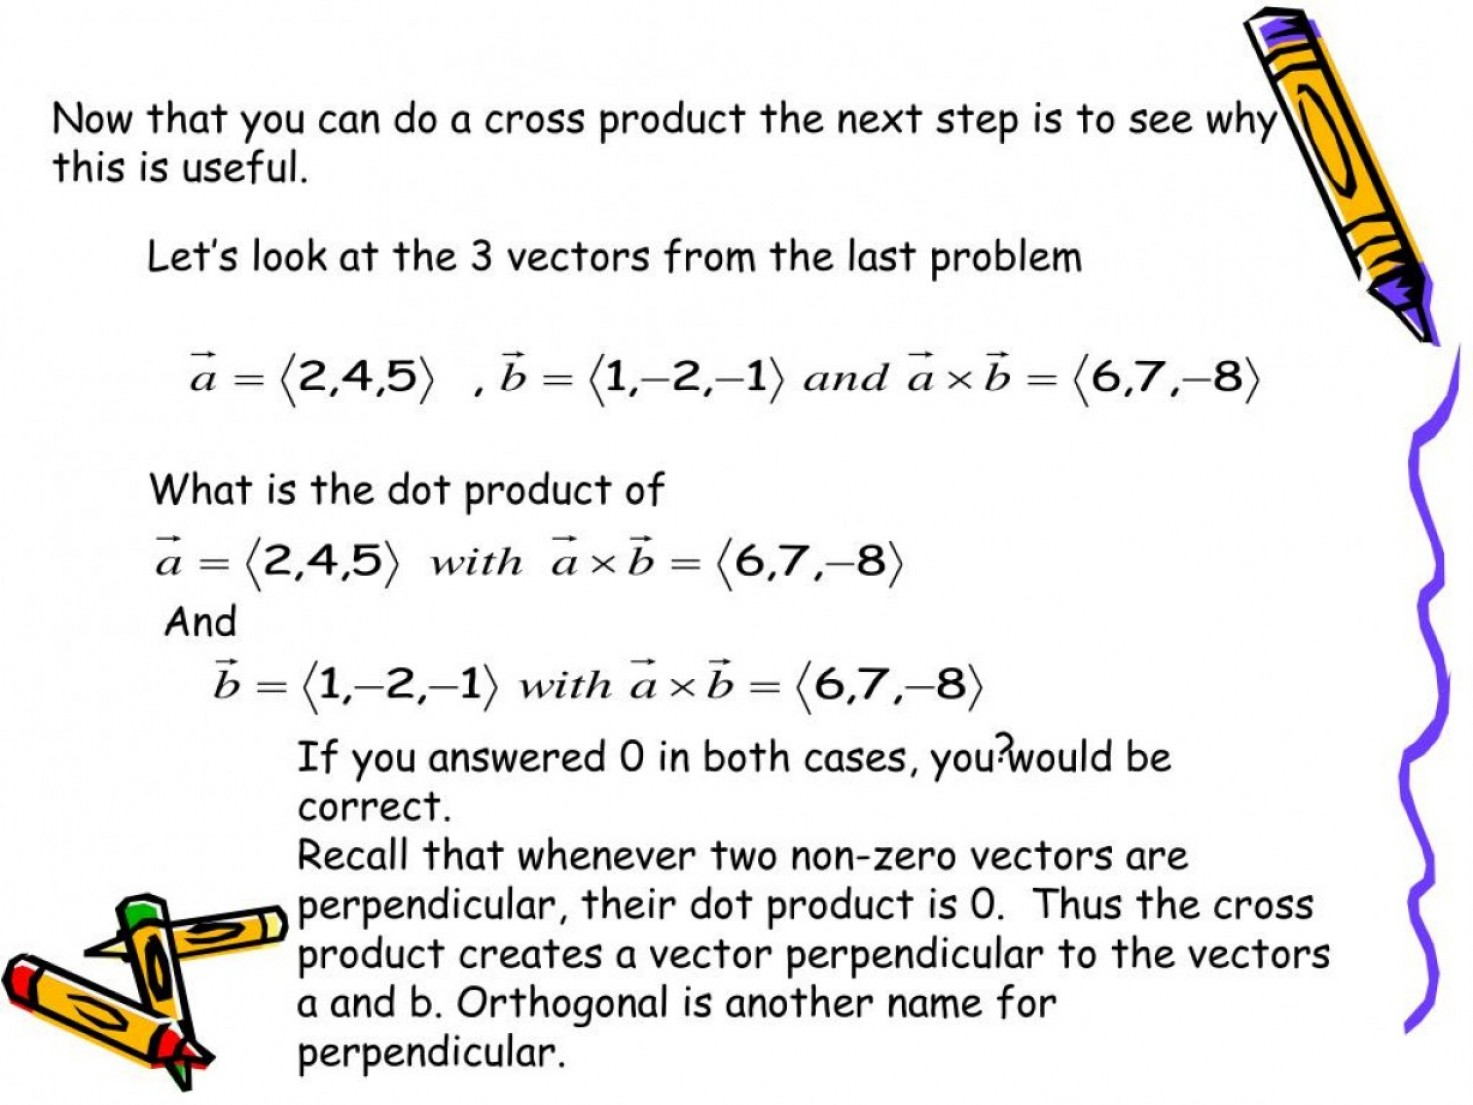 Cross Product Of Vectors 3: The Cross Product Of Two Vectors In Space